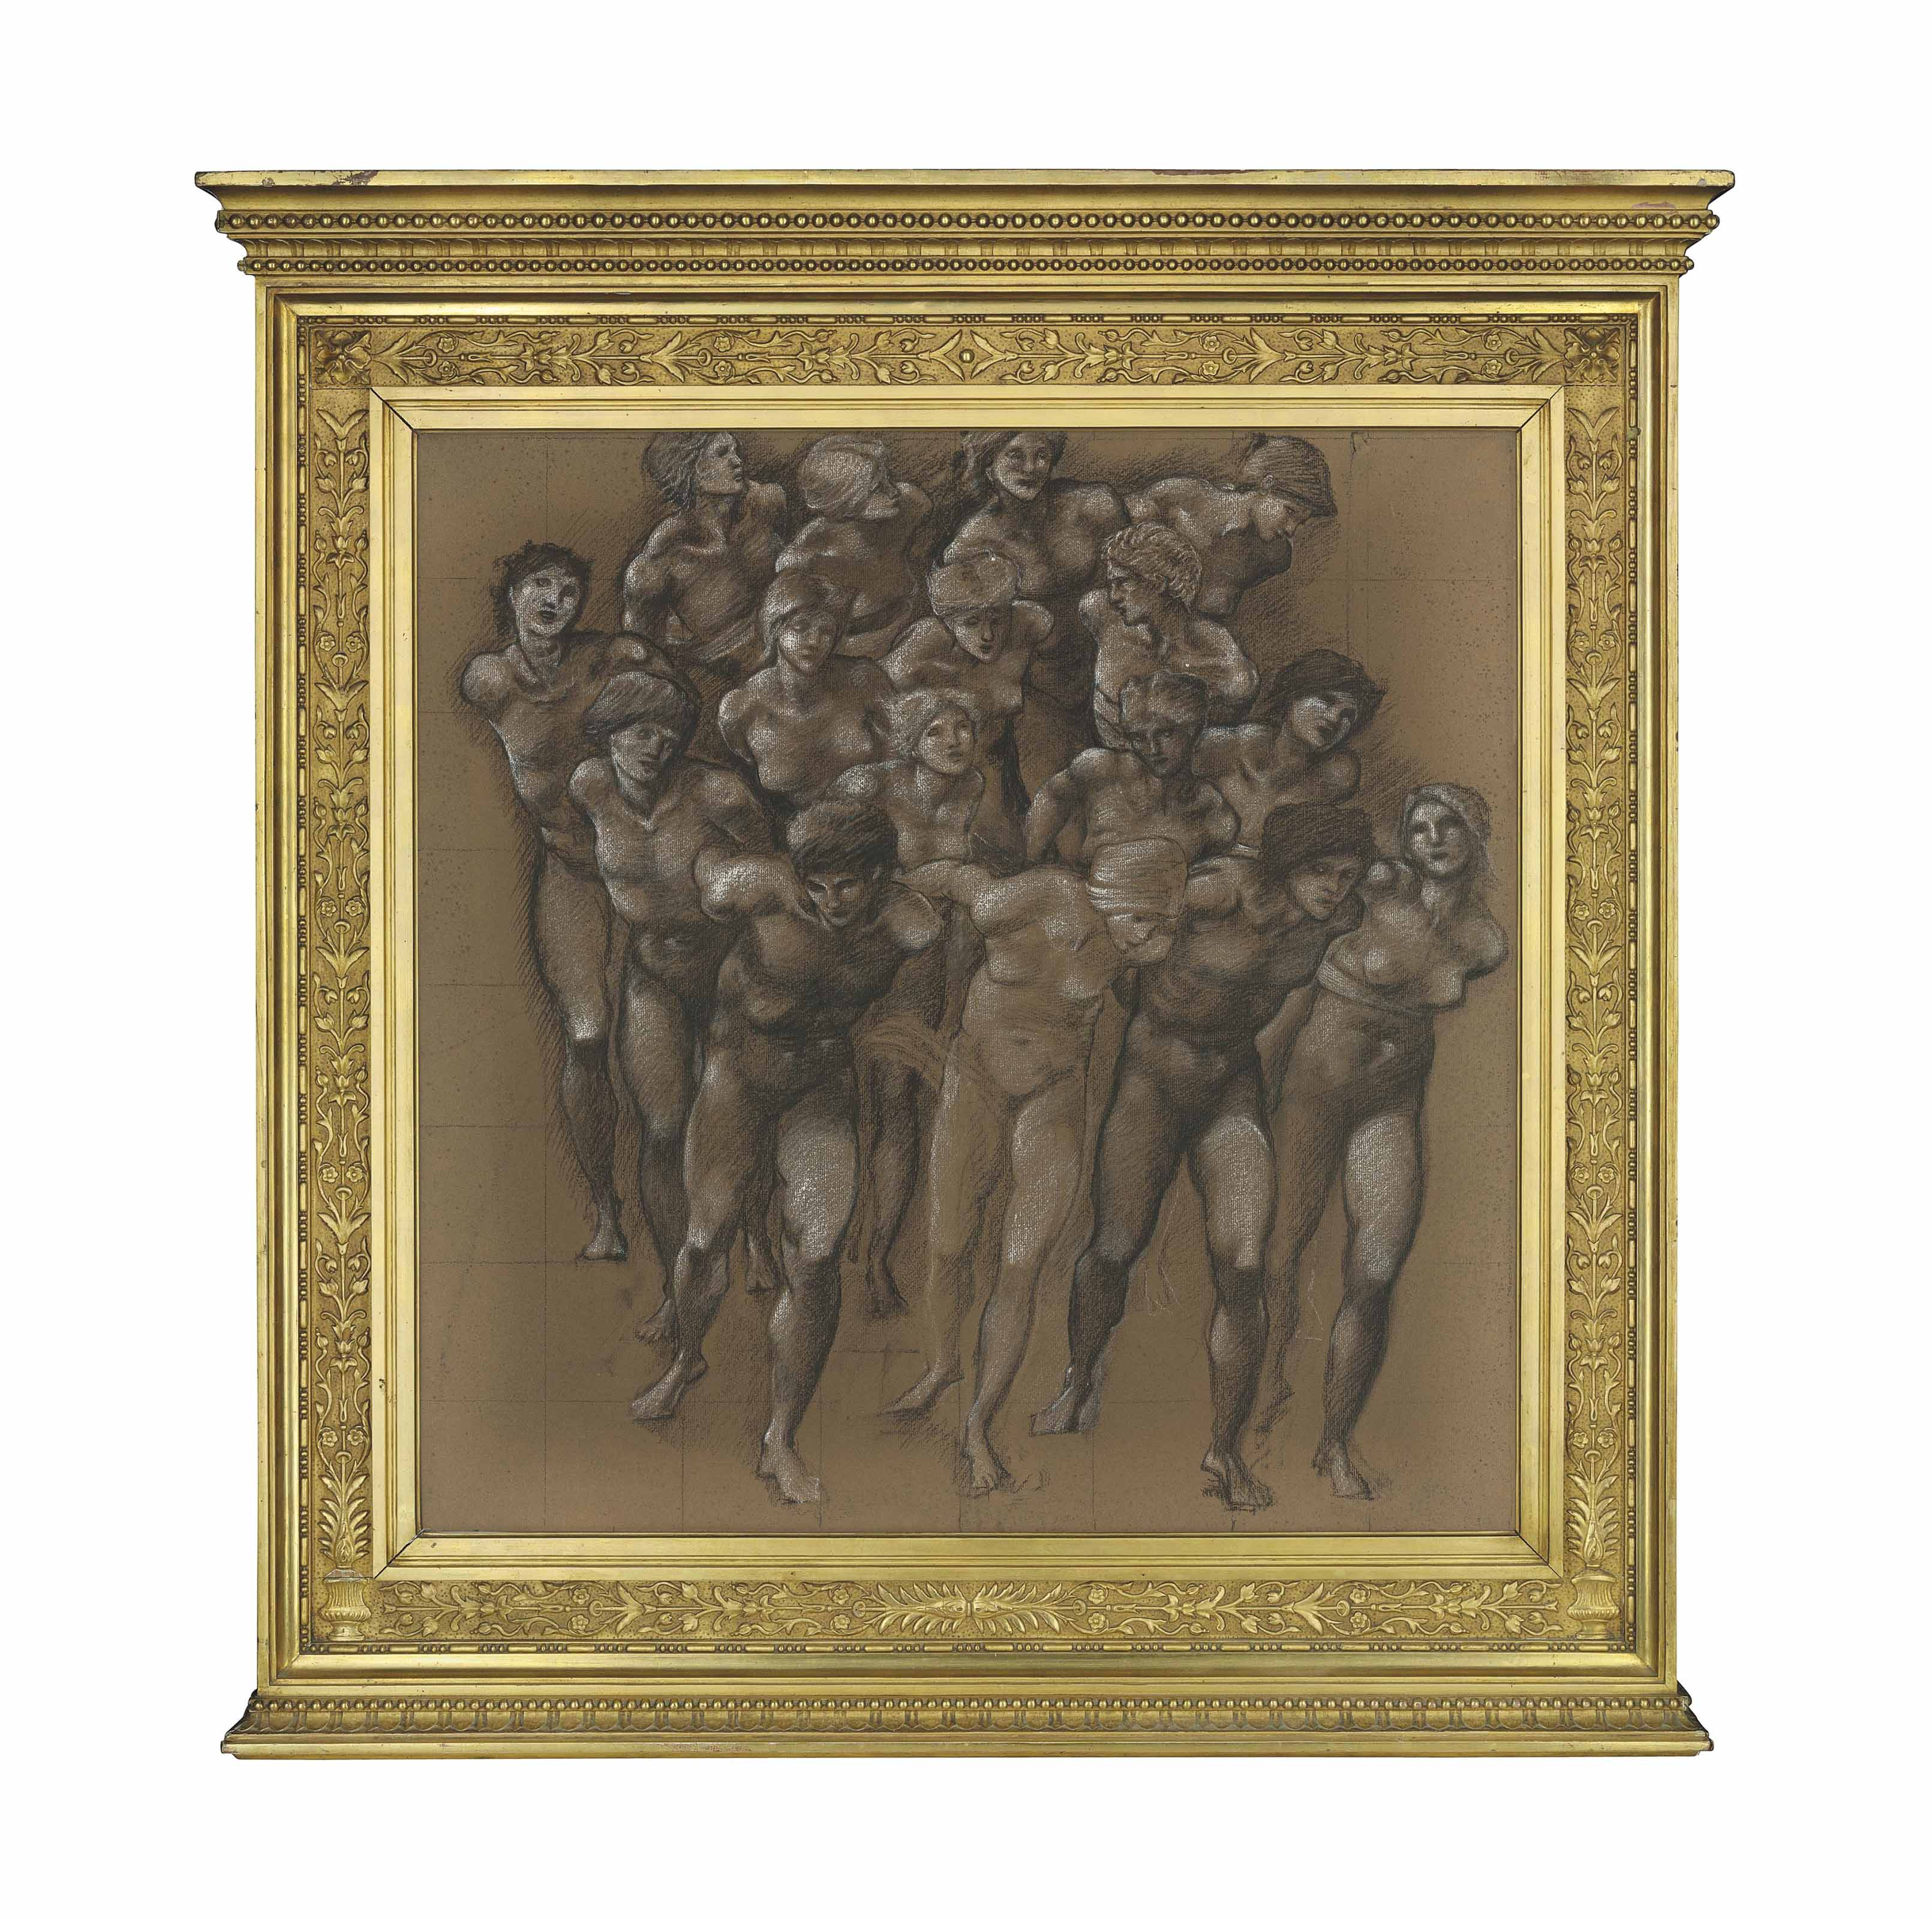 Study for the 'Chariot of Love', or 'Love's Wayfaring'